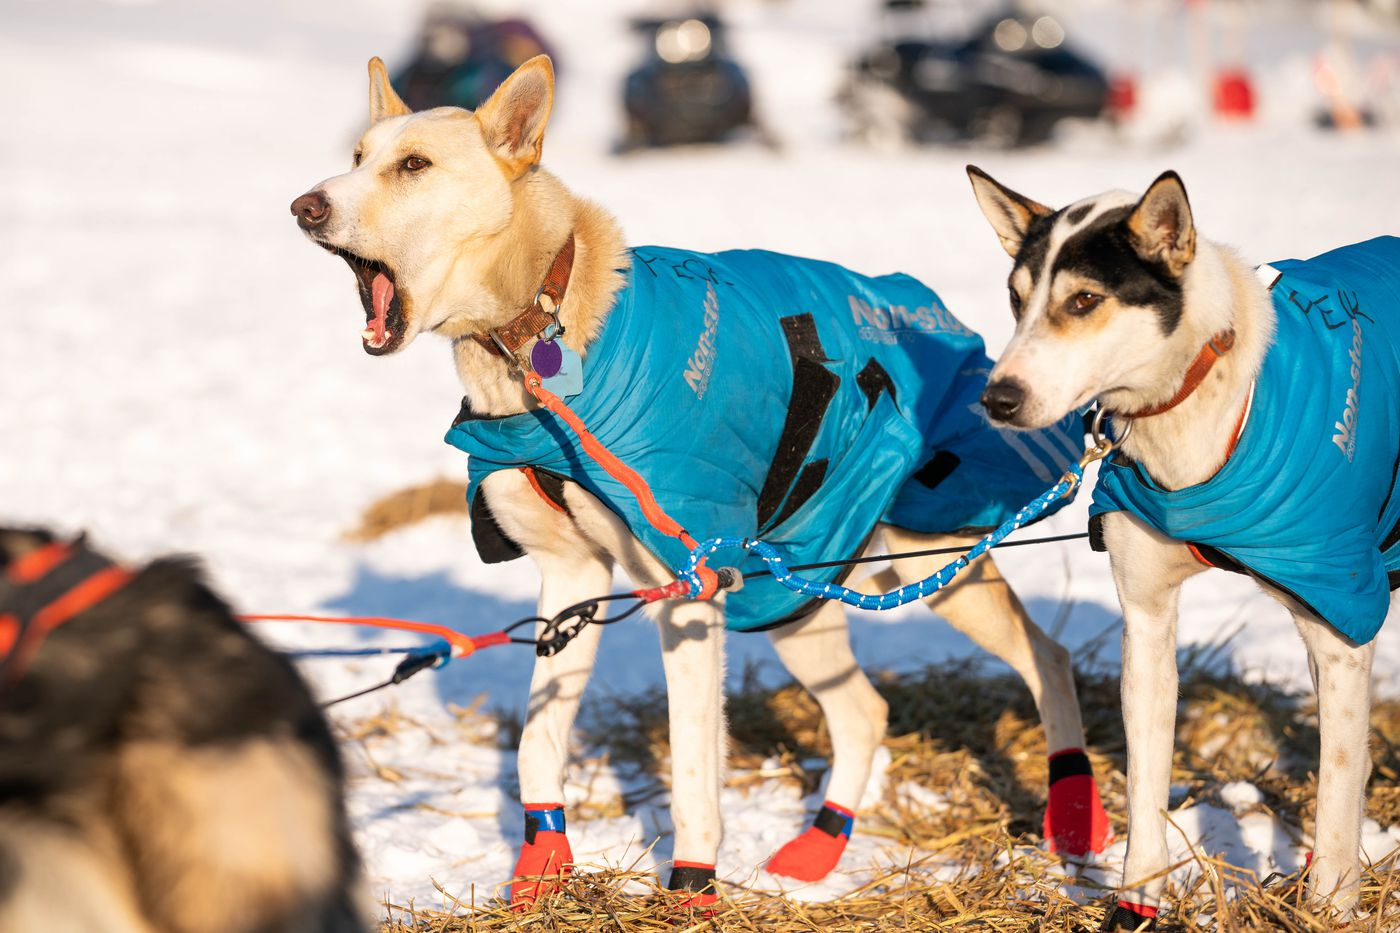 Dogs in Aaron Peck's team howl before leaving Nikolai on Tuesday, March 10, 2020 during the Iditarod Trail Sled Dog Race. (Loren Holmes / ADN)